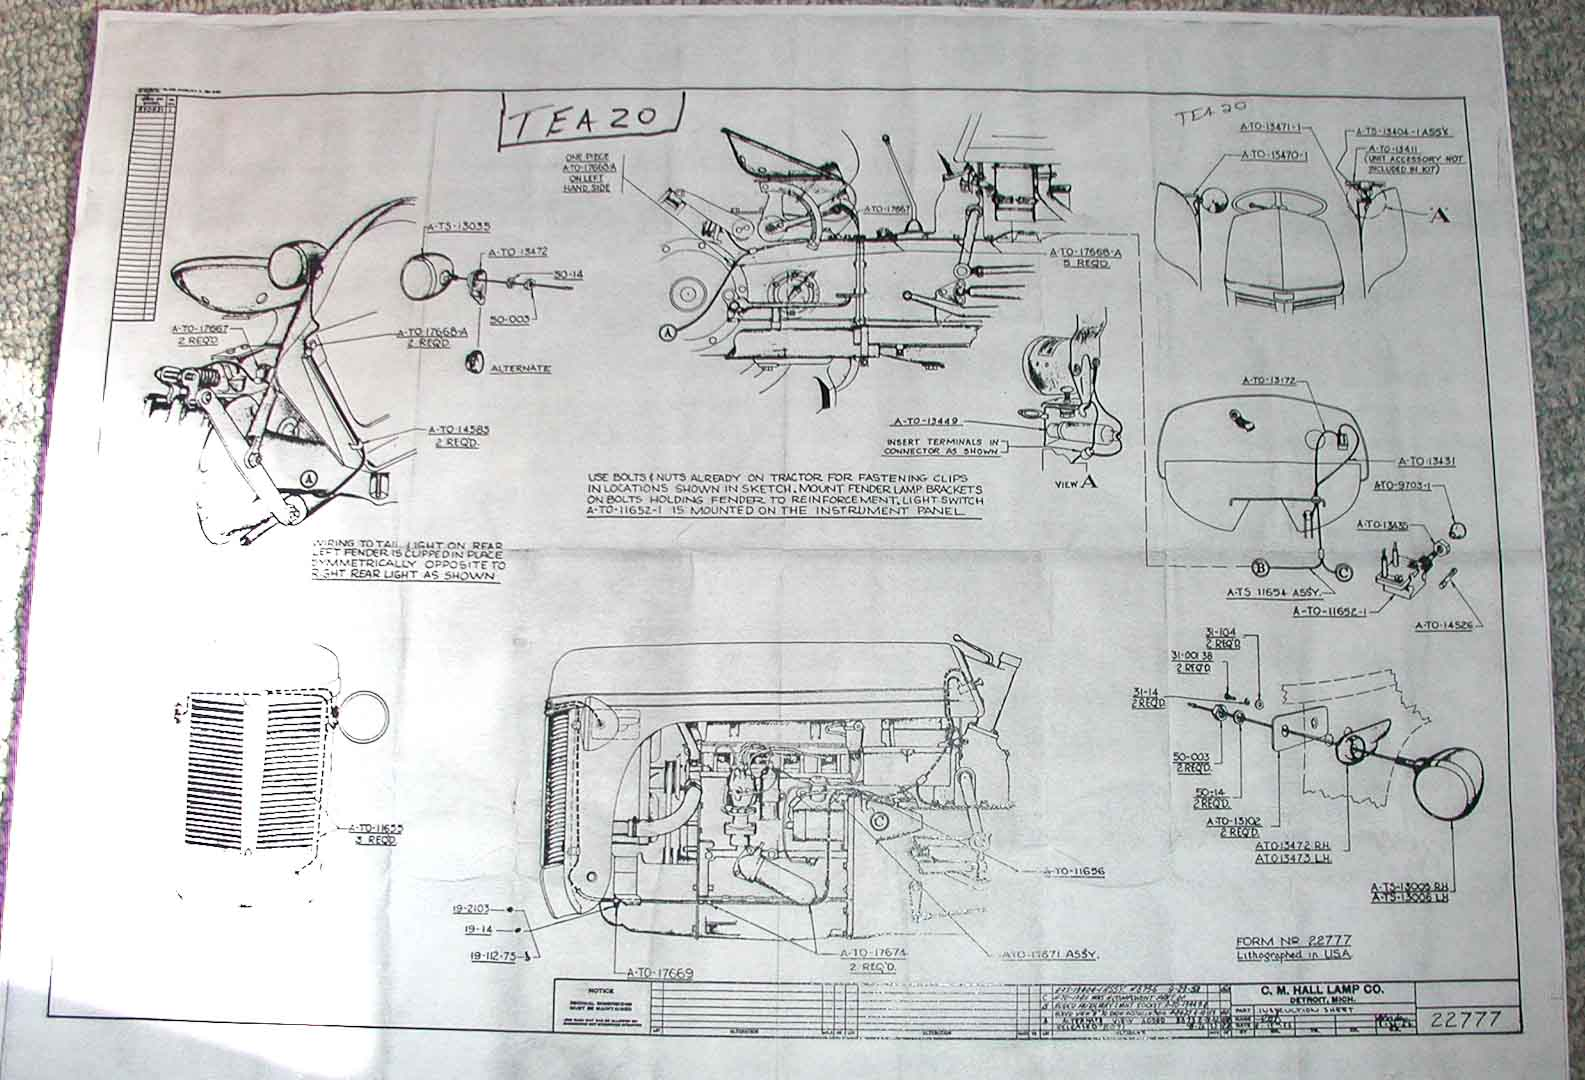 TEA20 Lighting Harness ferguson tea 20 wiring diagram ferguson te20 wiring diagram at gsmx.co